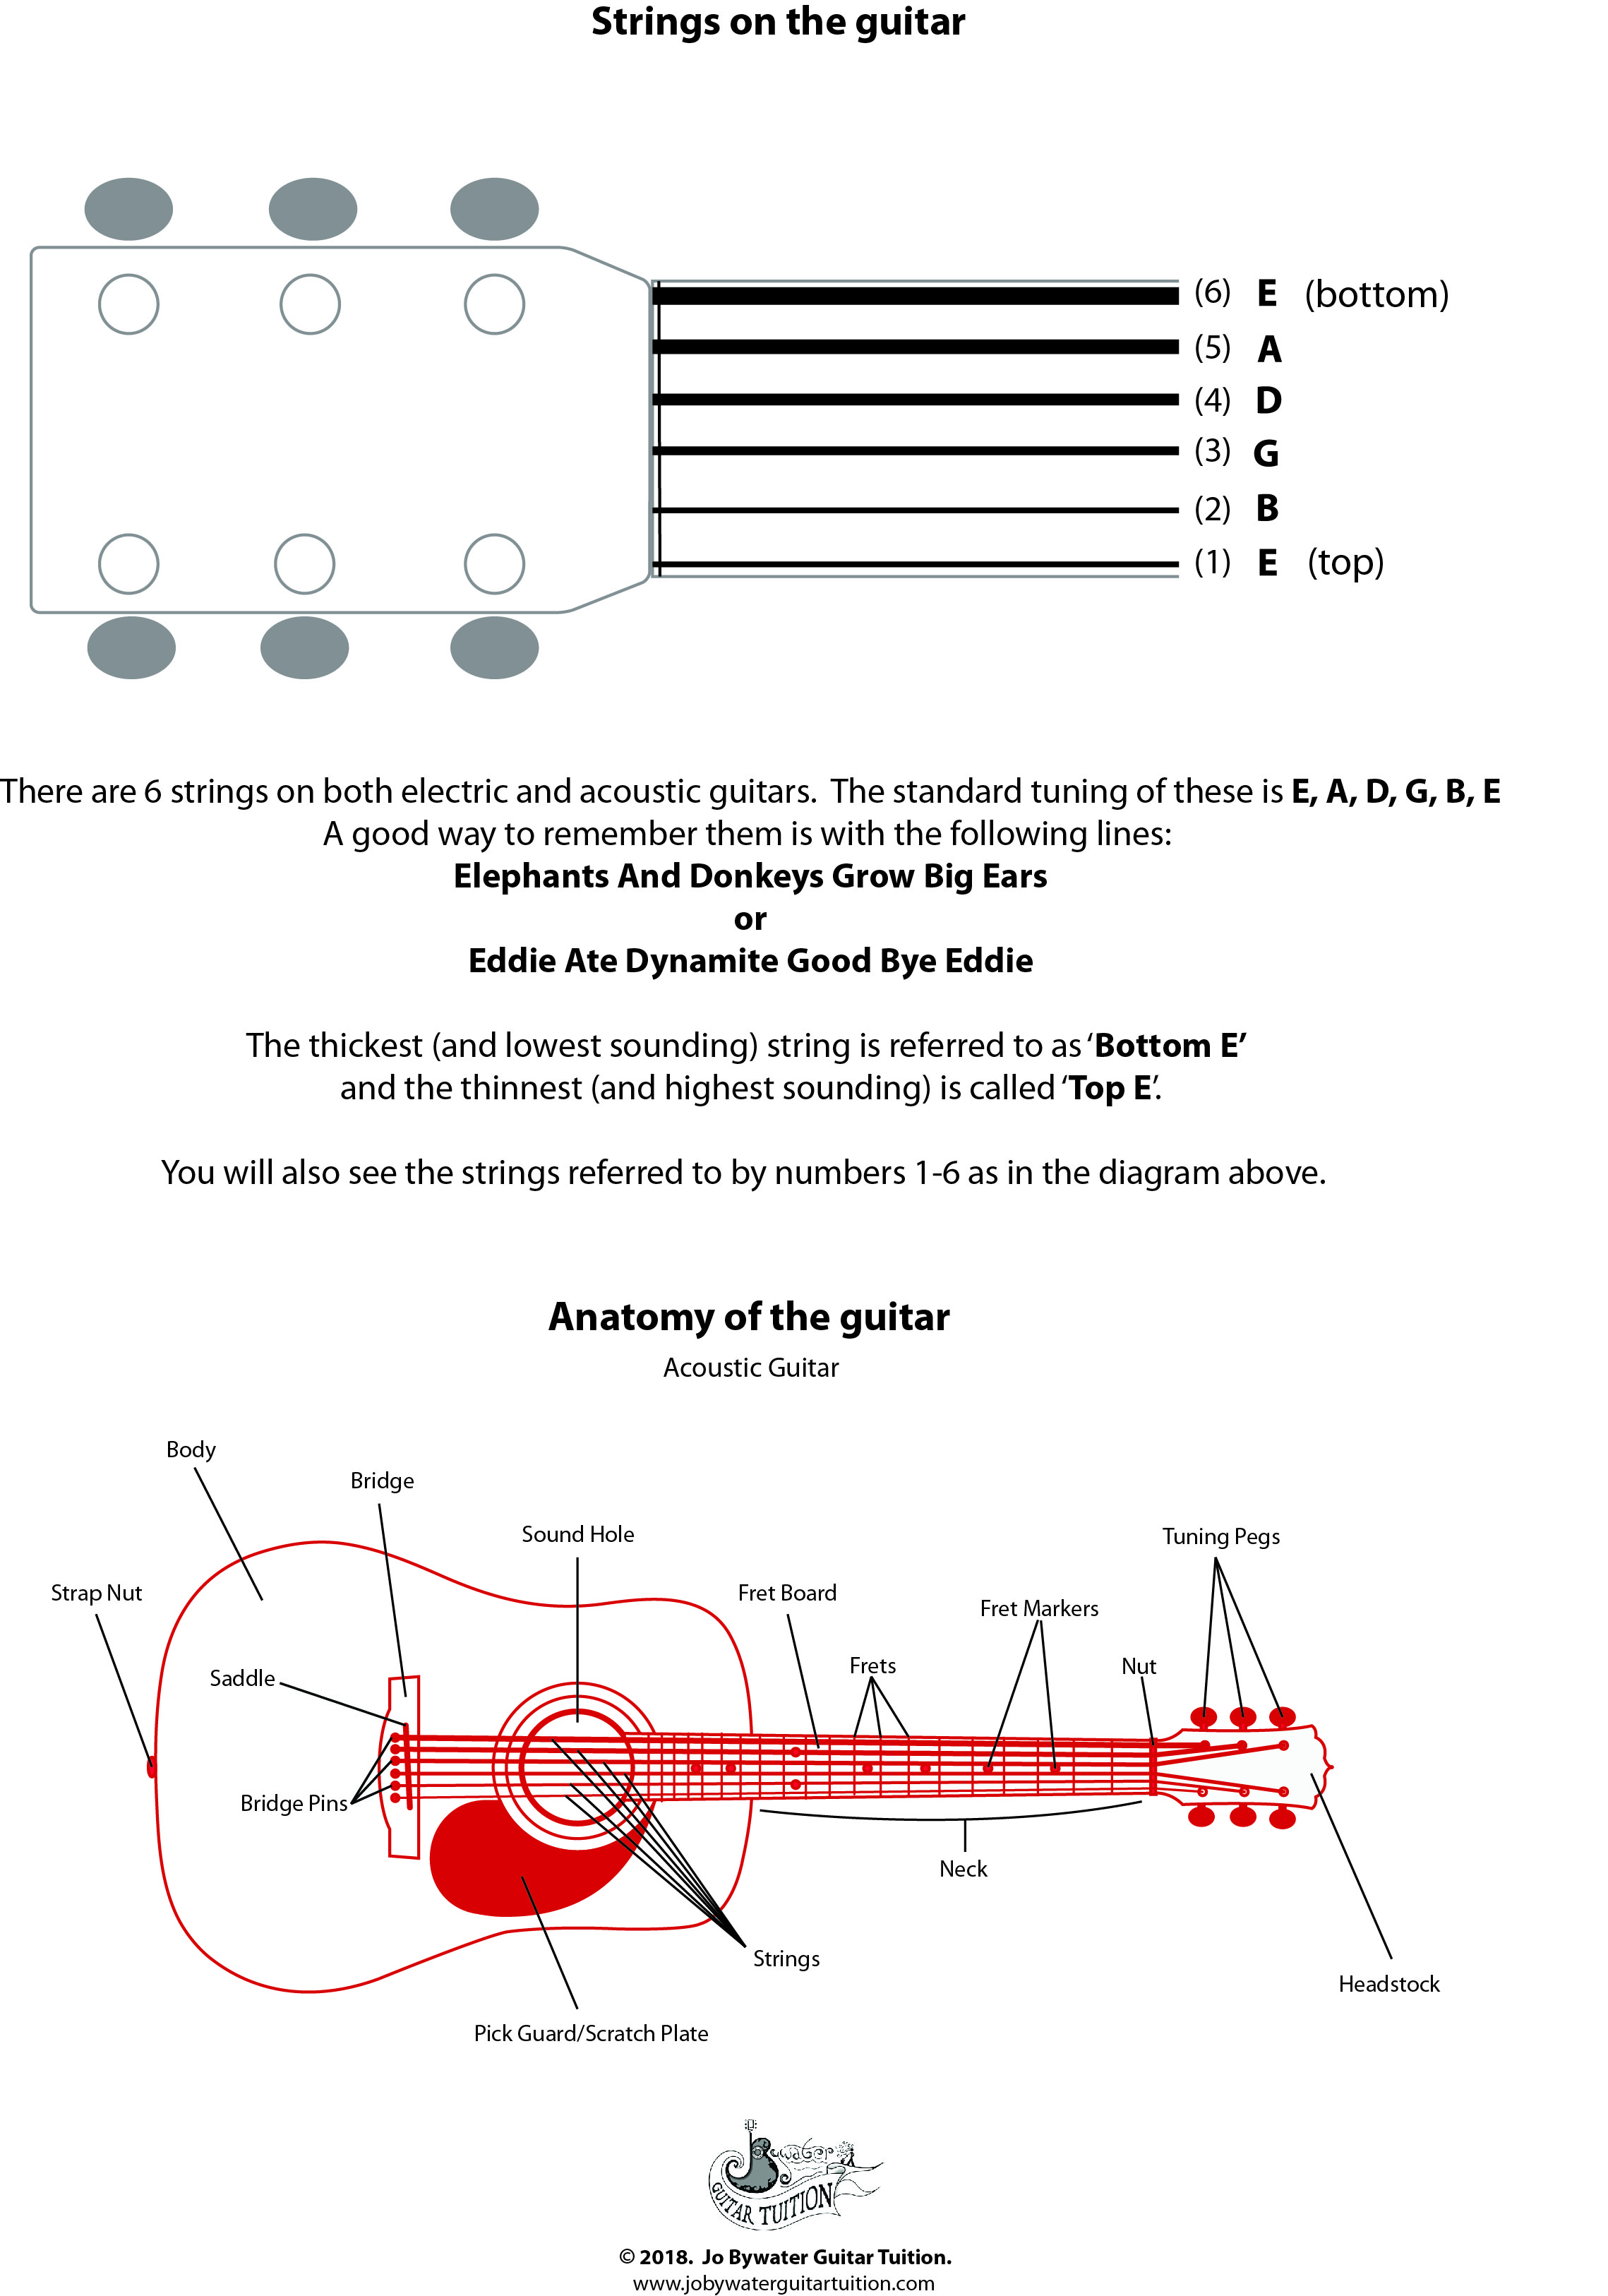 medium resolution of free resources jo bywater guitar tuition acoustic guitar labelled diagram jo bywater guitar tuition